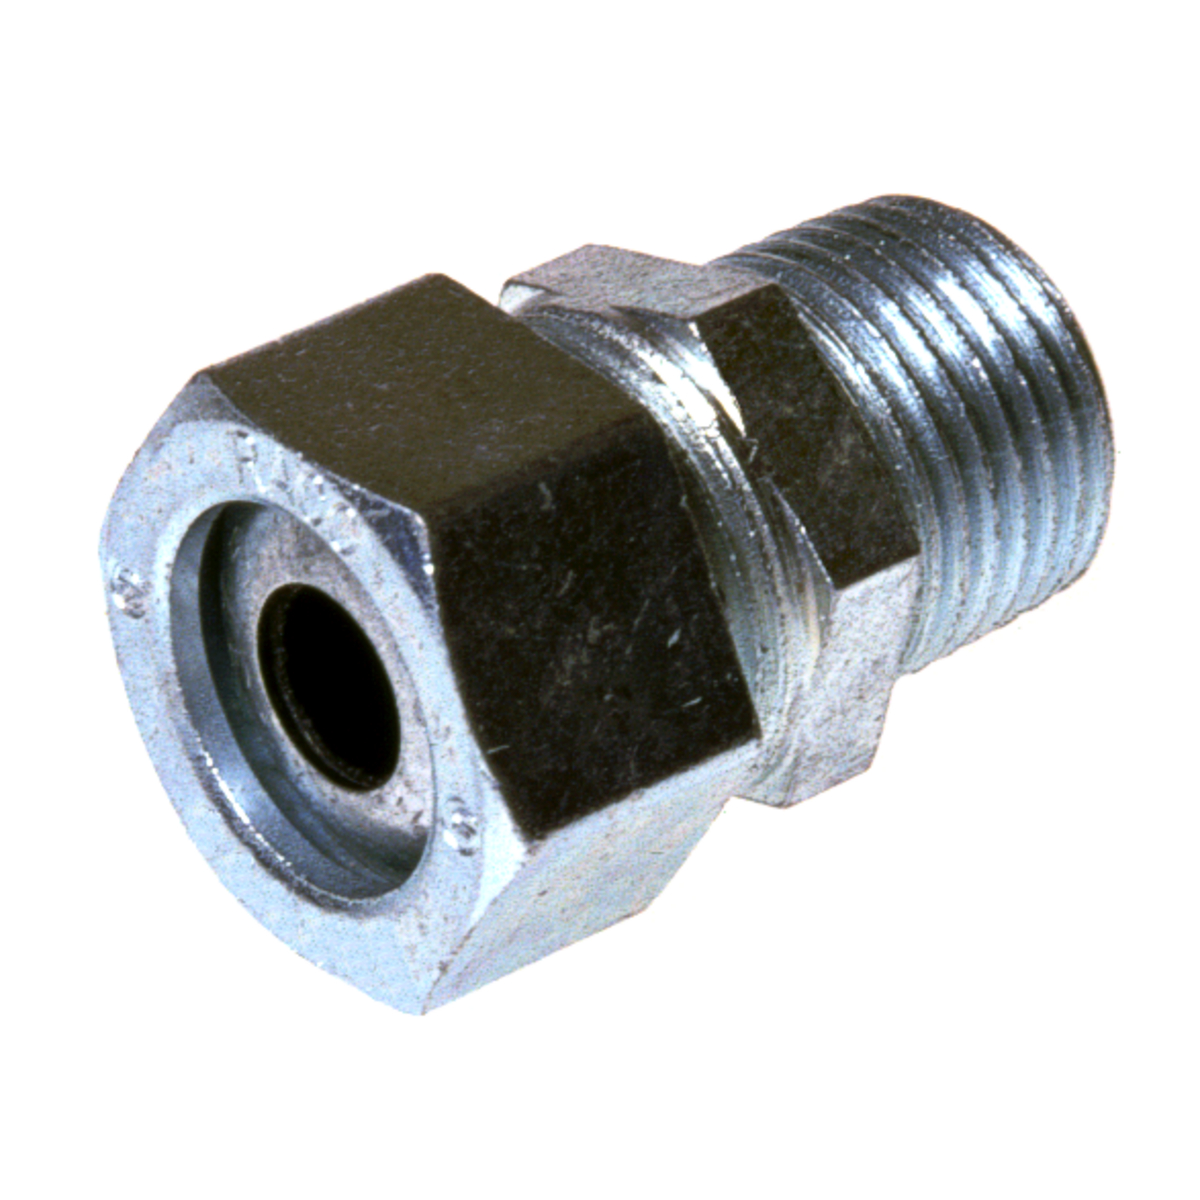 Hubbell-Raco 3702-6 Cord Connector